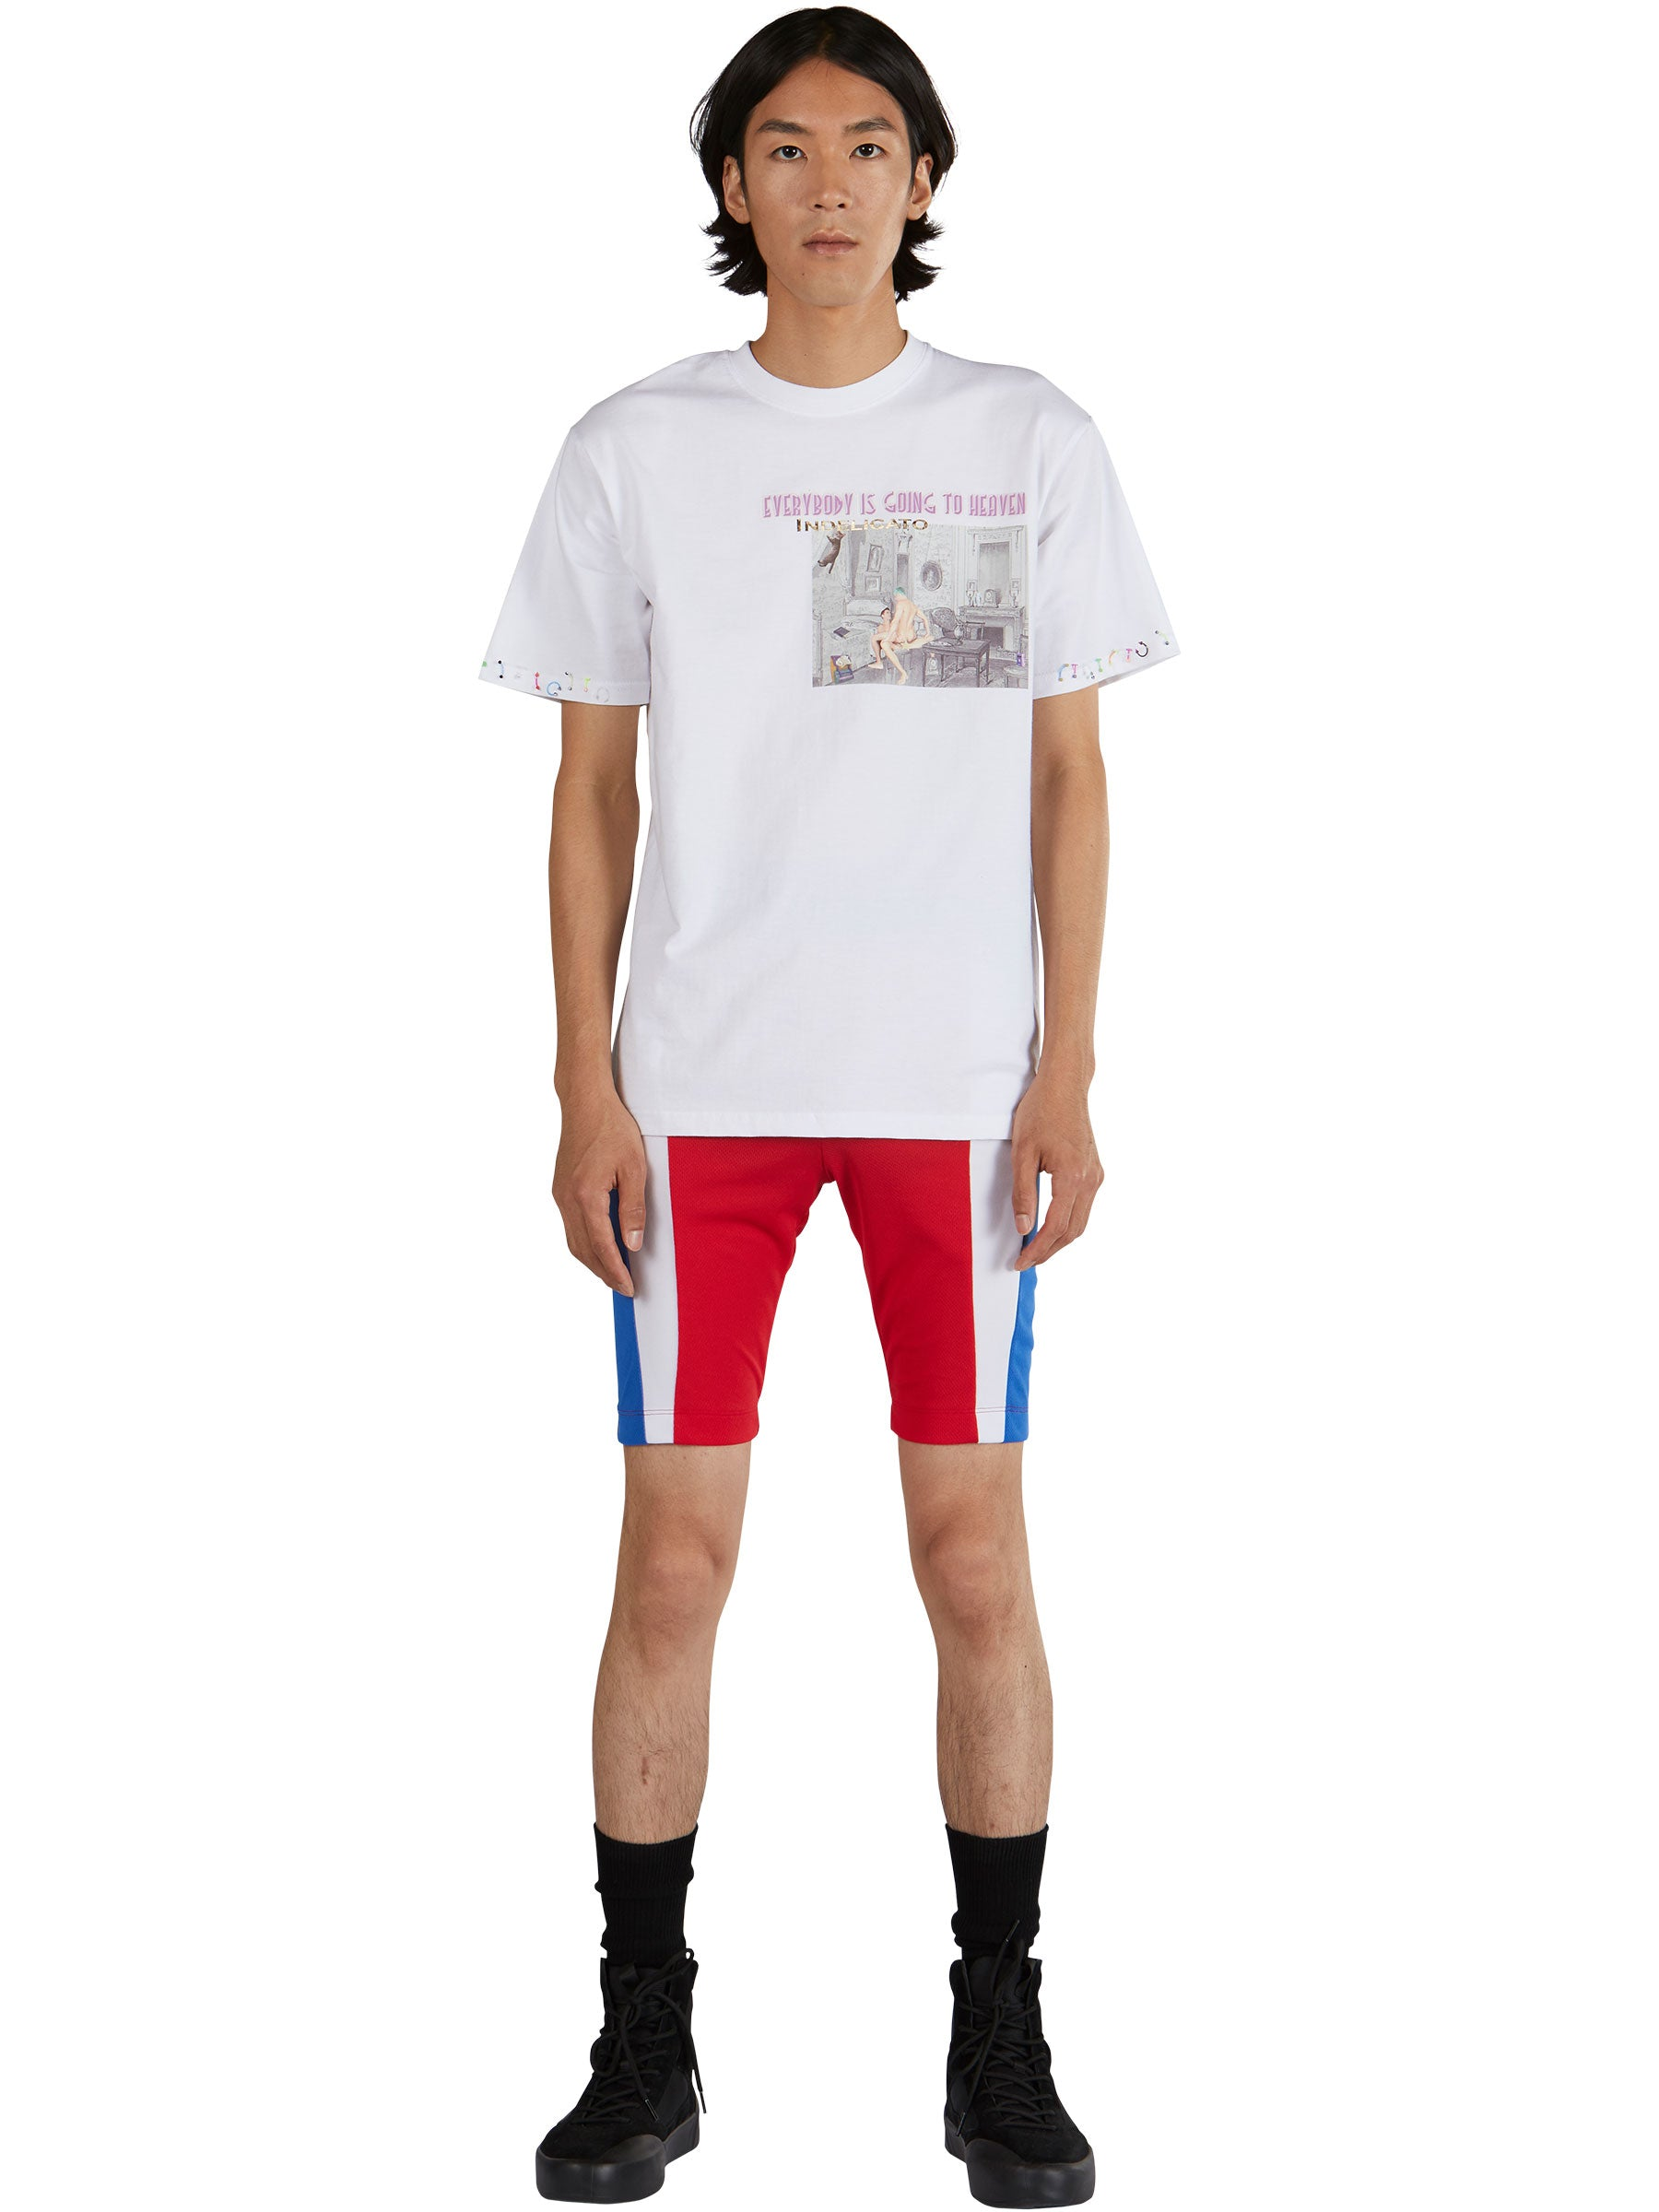 odd92 Nicola Indelicato Piercing T-Shirt Fall/Winter 2019 Menswear - 3